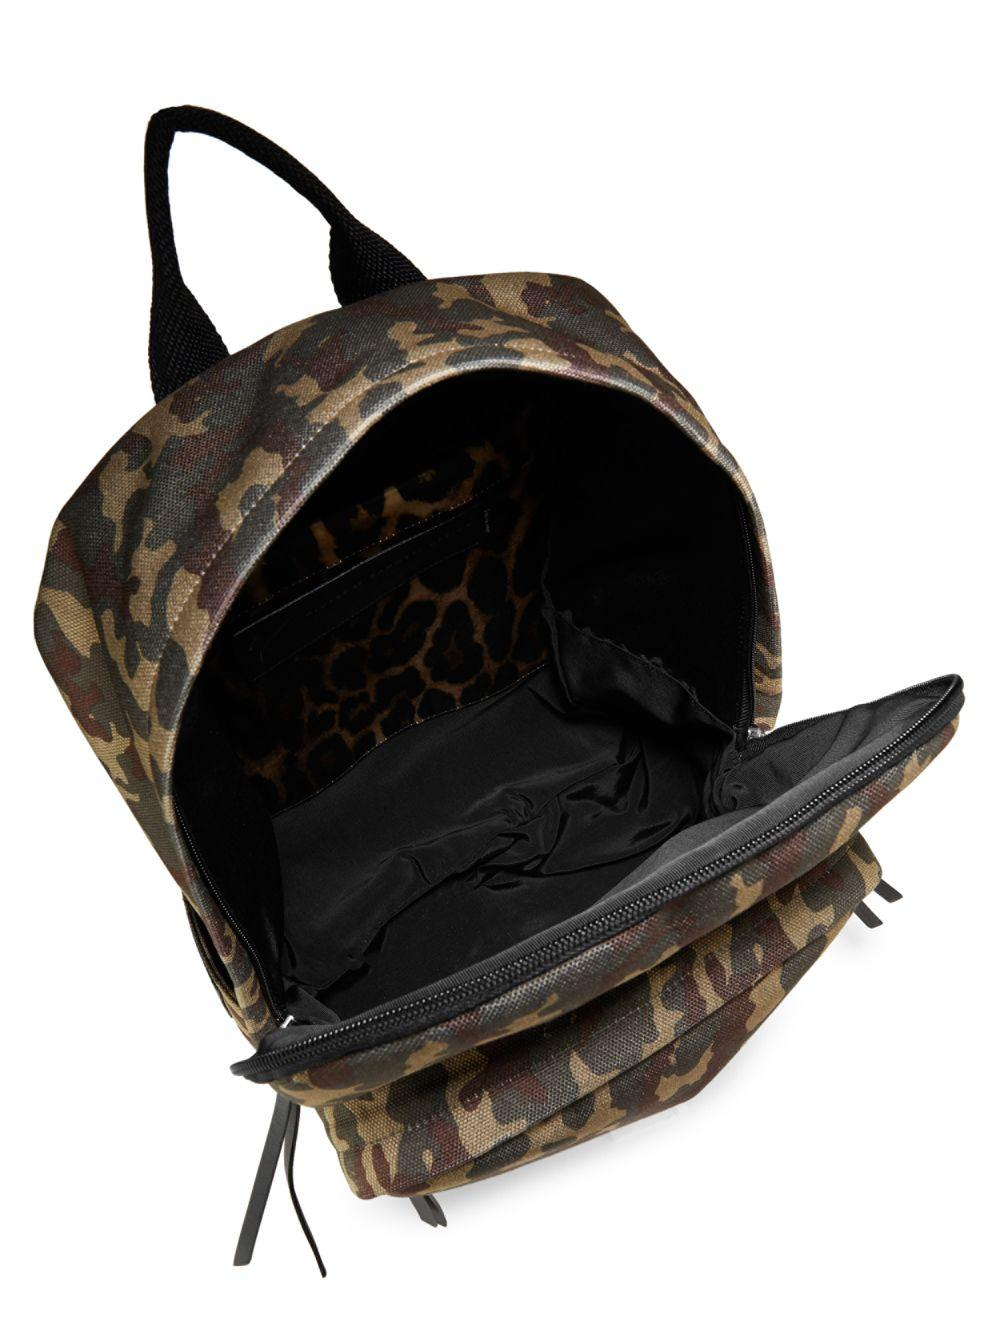 00baf572d6929 Guiseppe Zanotti Camouflage Backpack | The Shred Centre